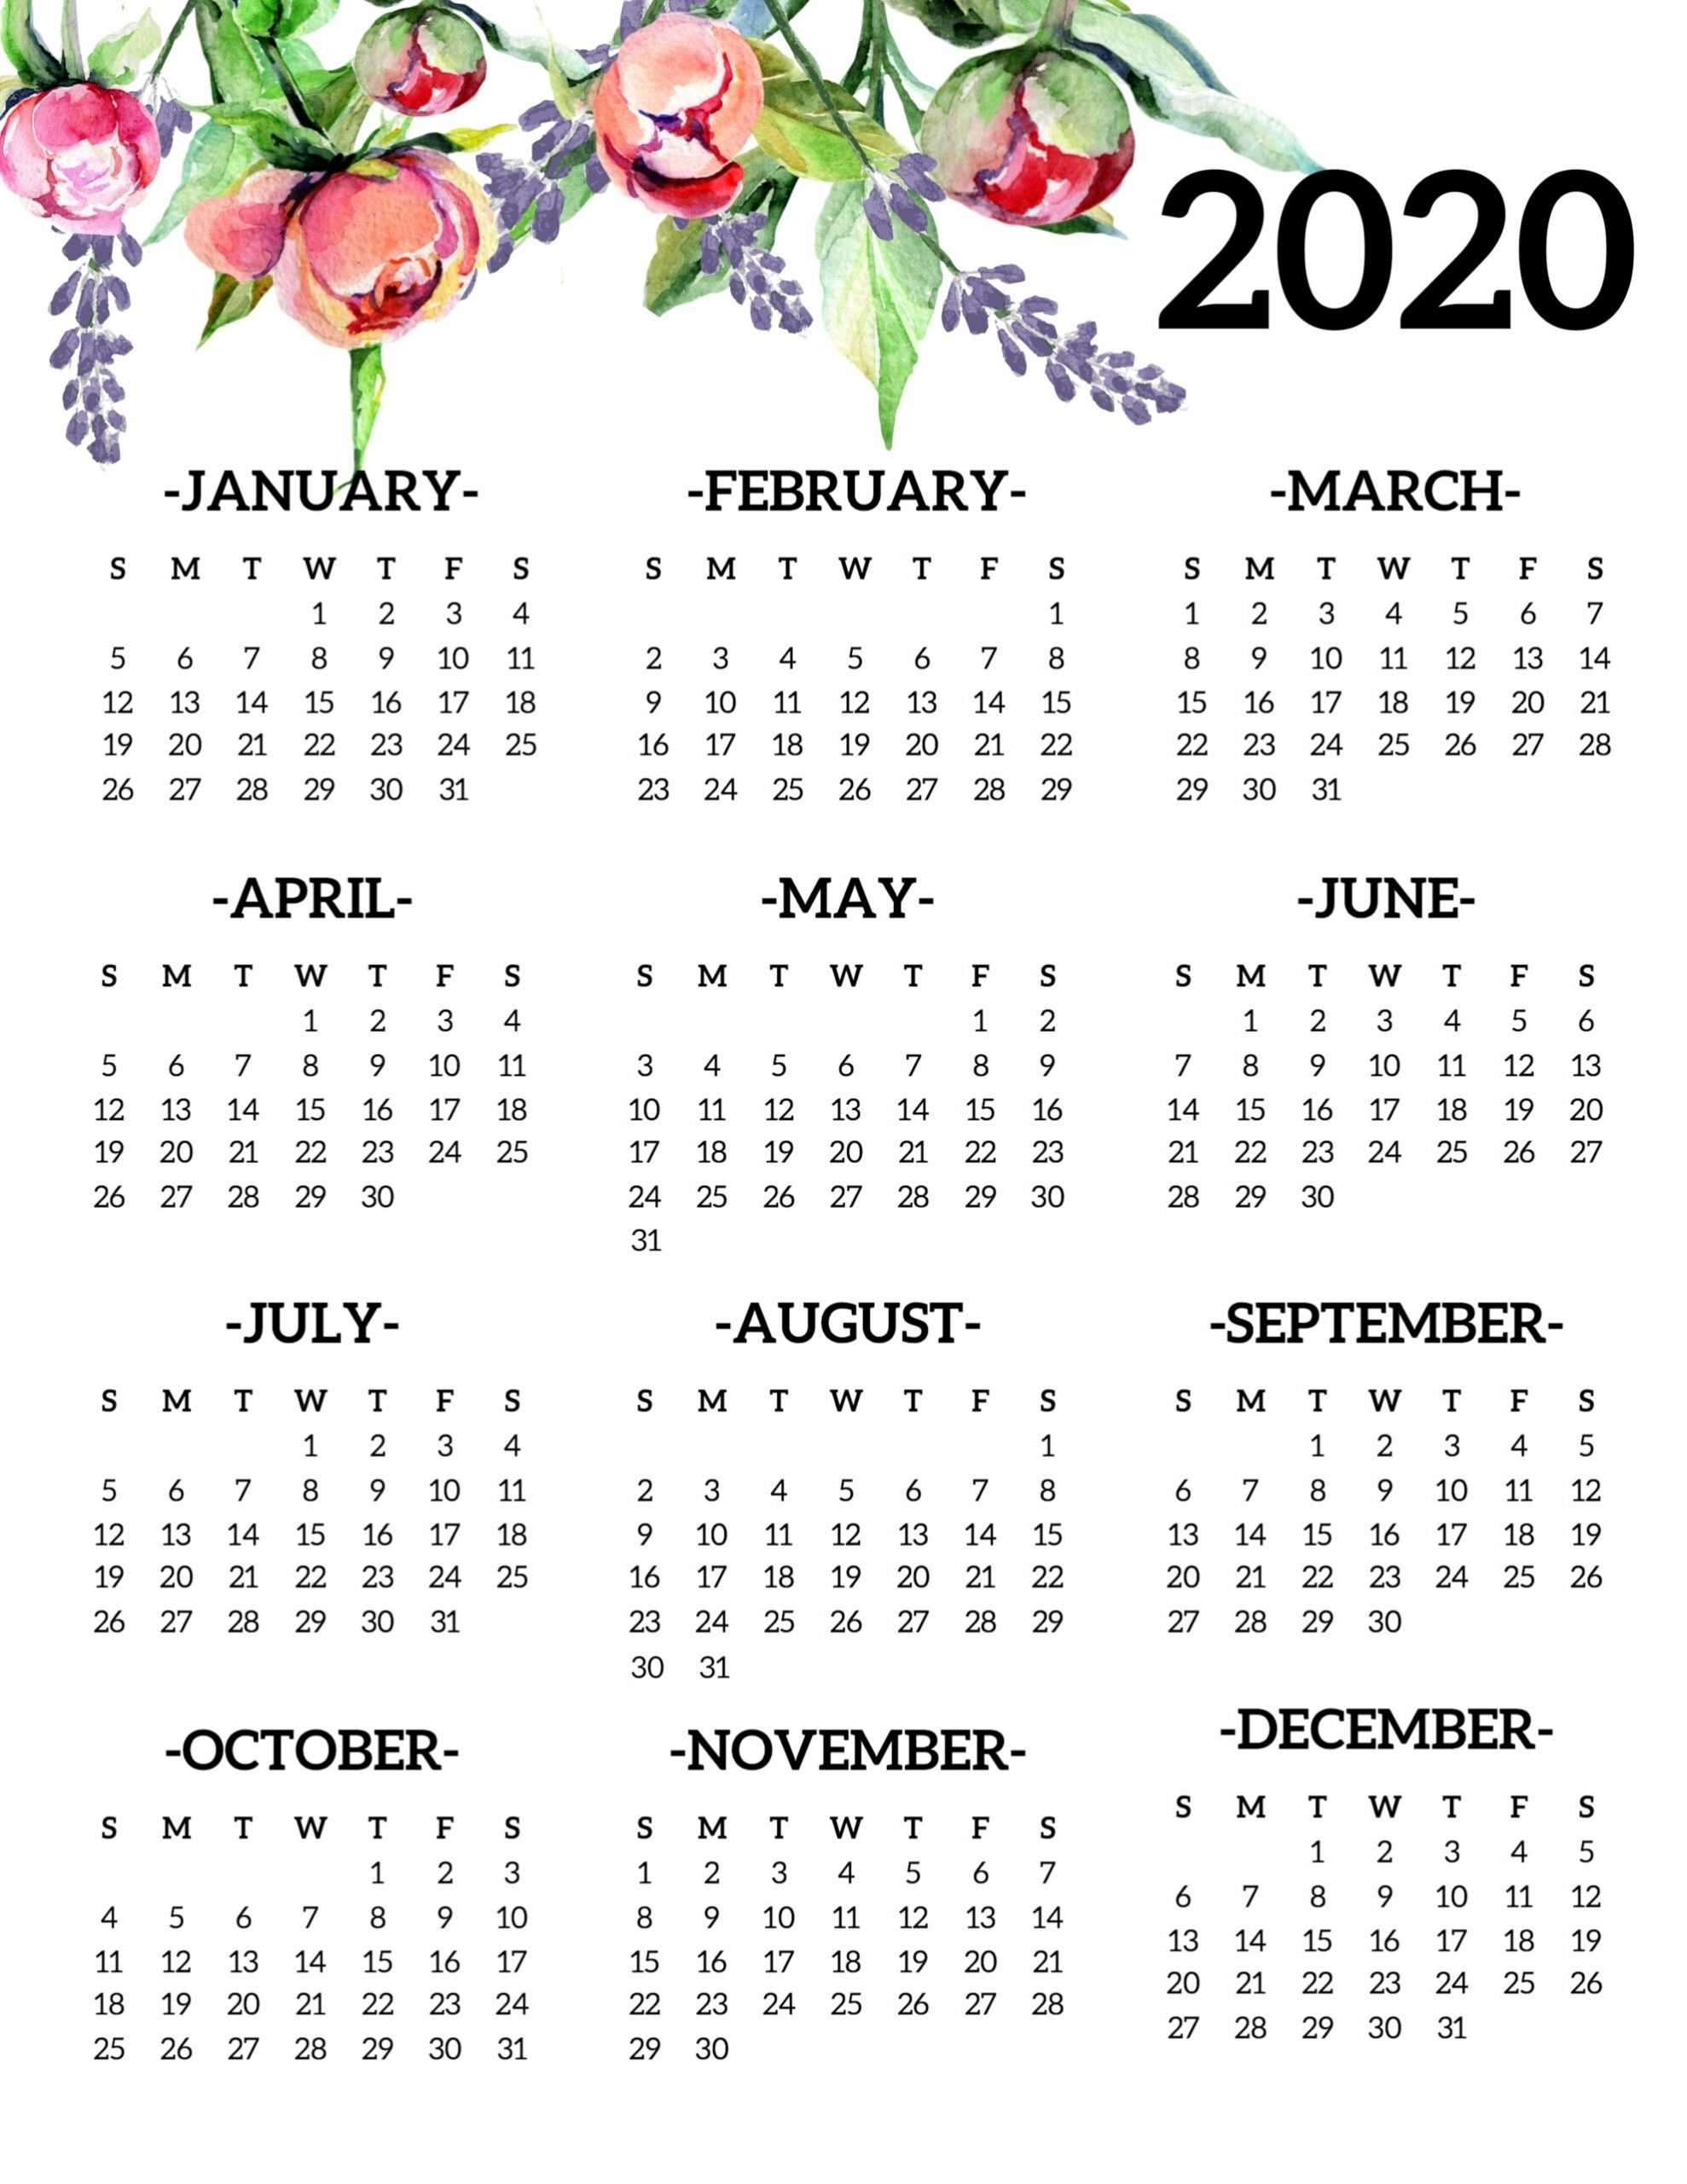 2020 Free Printable Calendars Without Downloading At A Glance - Calendar Inspiration Design